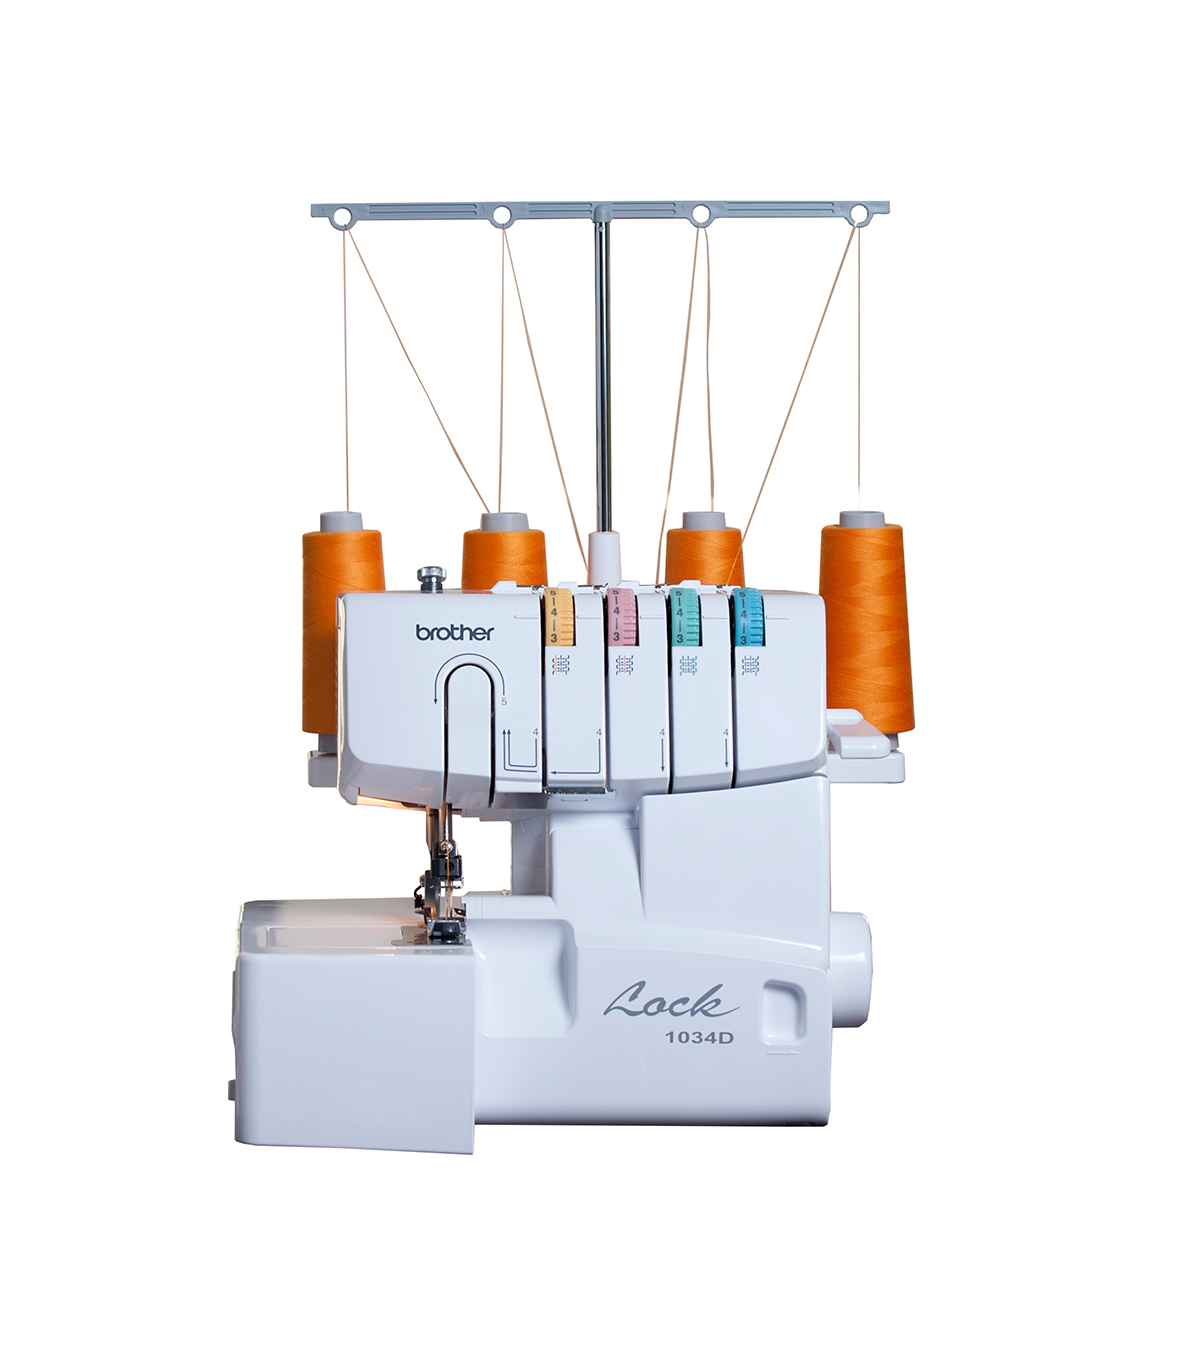 Brother 1034d 3/4 Thread Serger